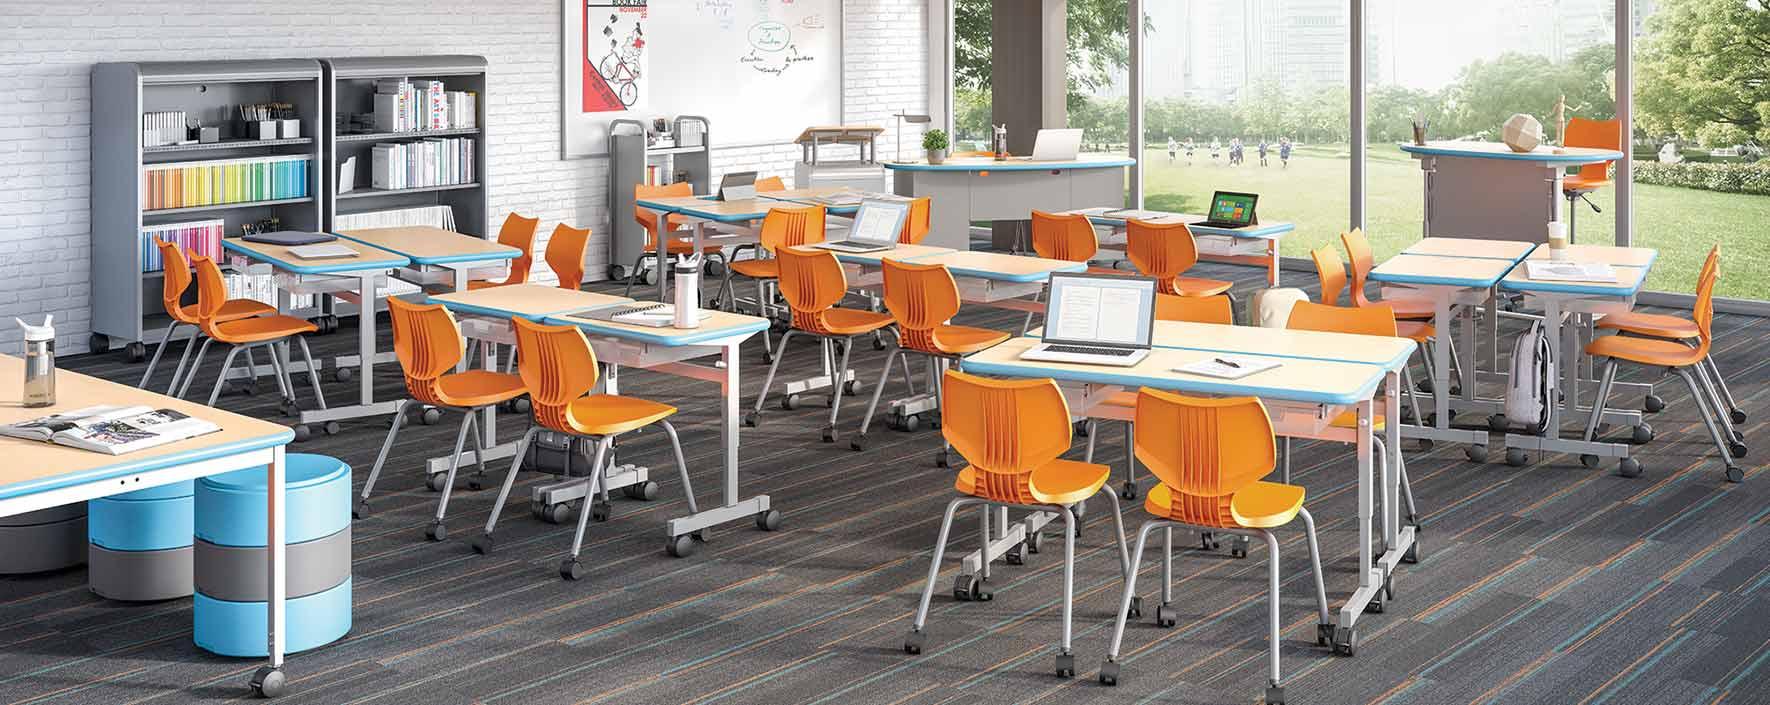 Classroom Furniture Layouts For K 12 Red Thread